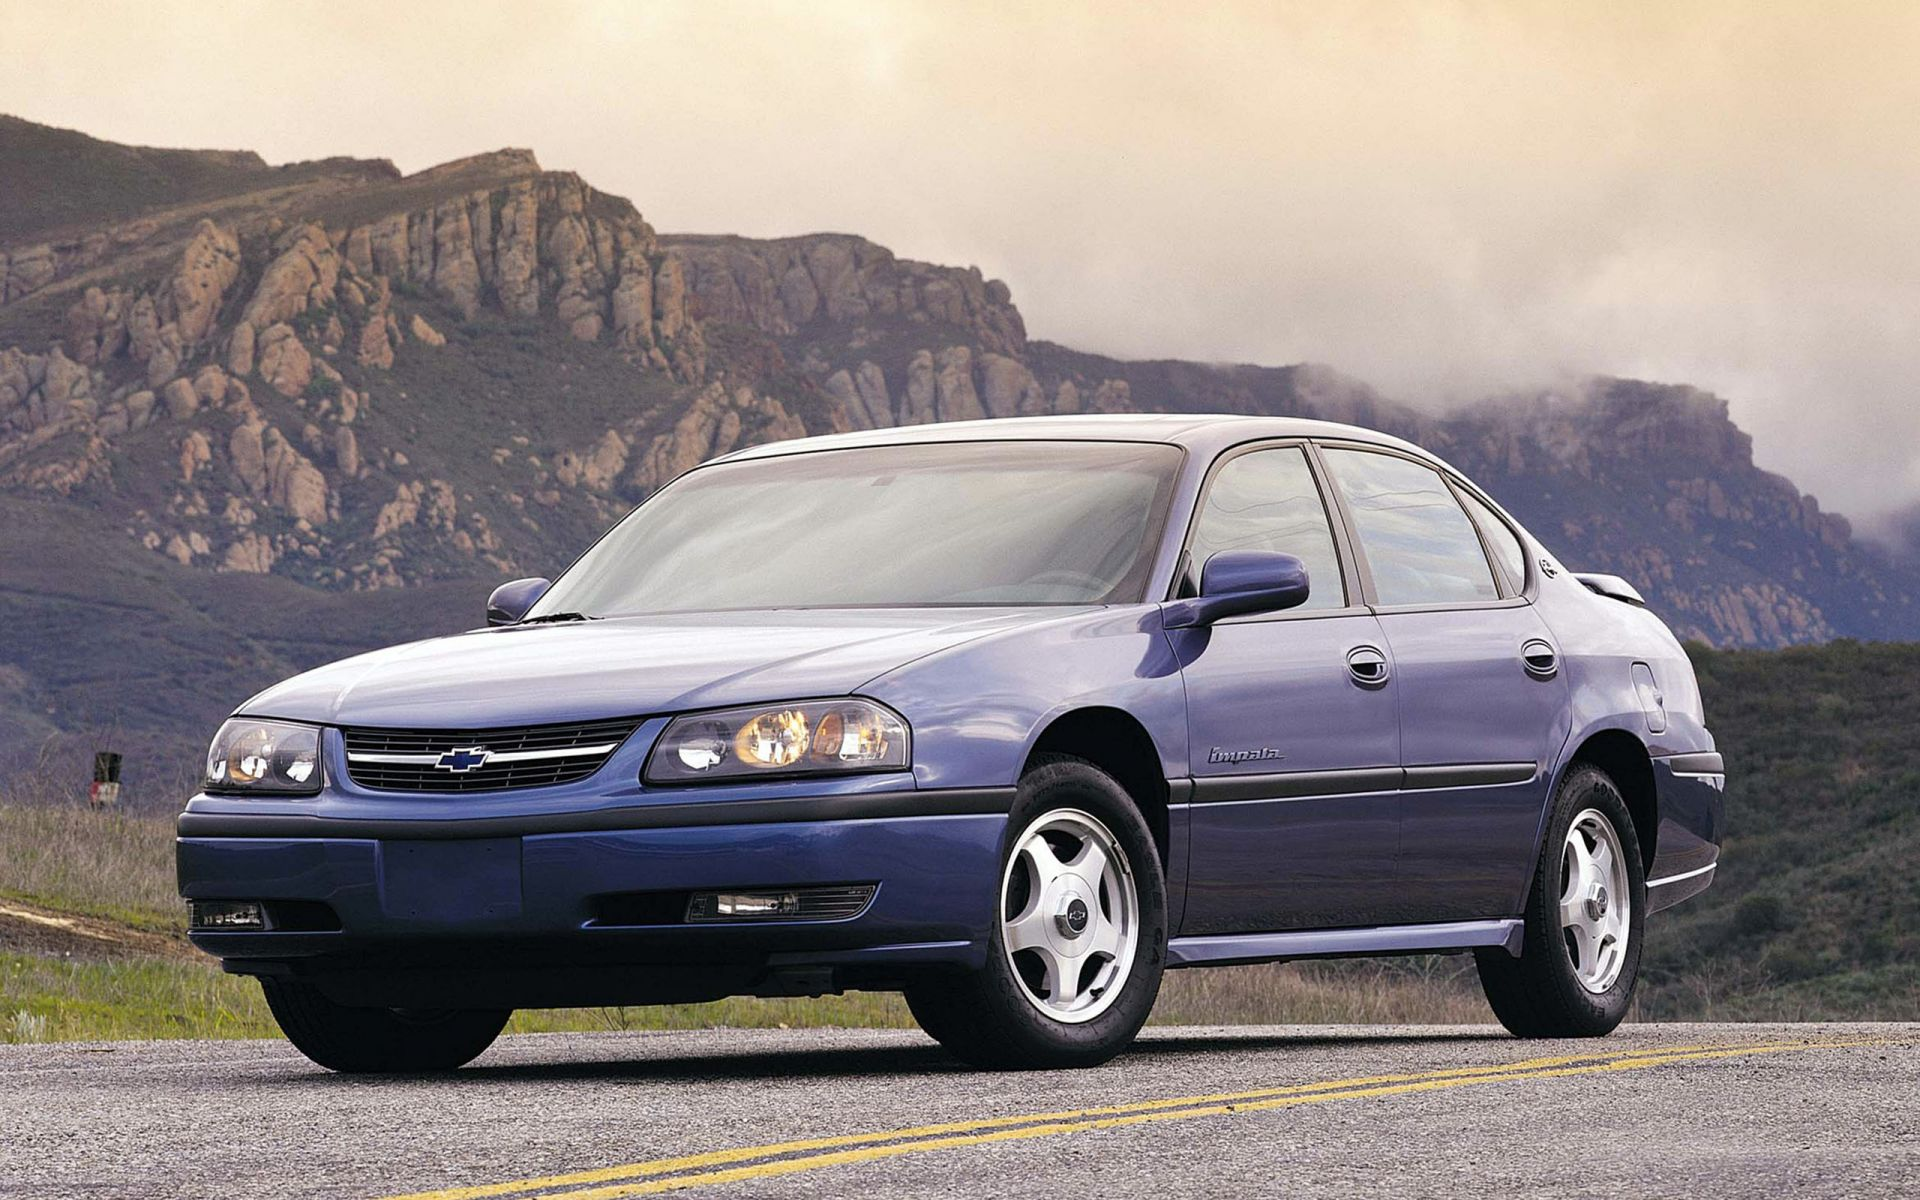 2004 Chevrolet Malibu Pictures C804 together with Watch moreover Dashboard 52704456 in addition Chevrolet Camaro 5 7 1998 Specs And Images moreover Chevrolet Impala 2000 Mountain Background Wallpaper 1920x1200. on 2003 chevy impala ls